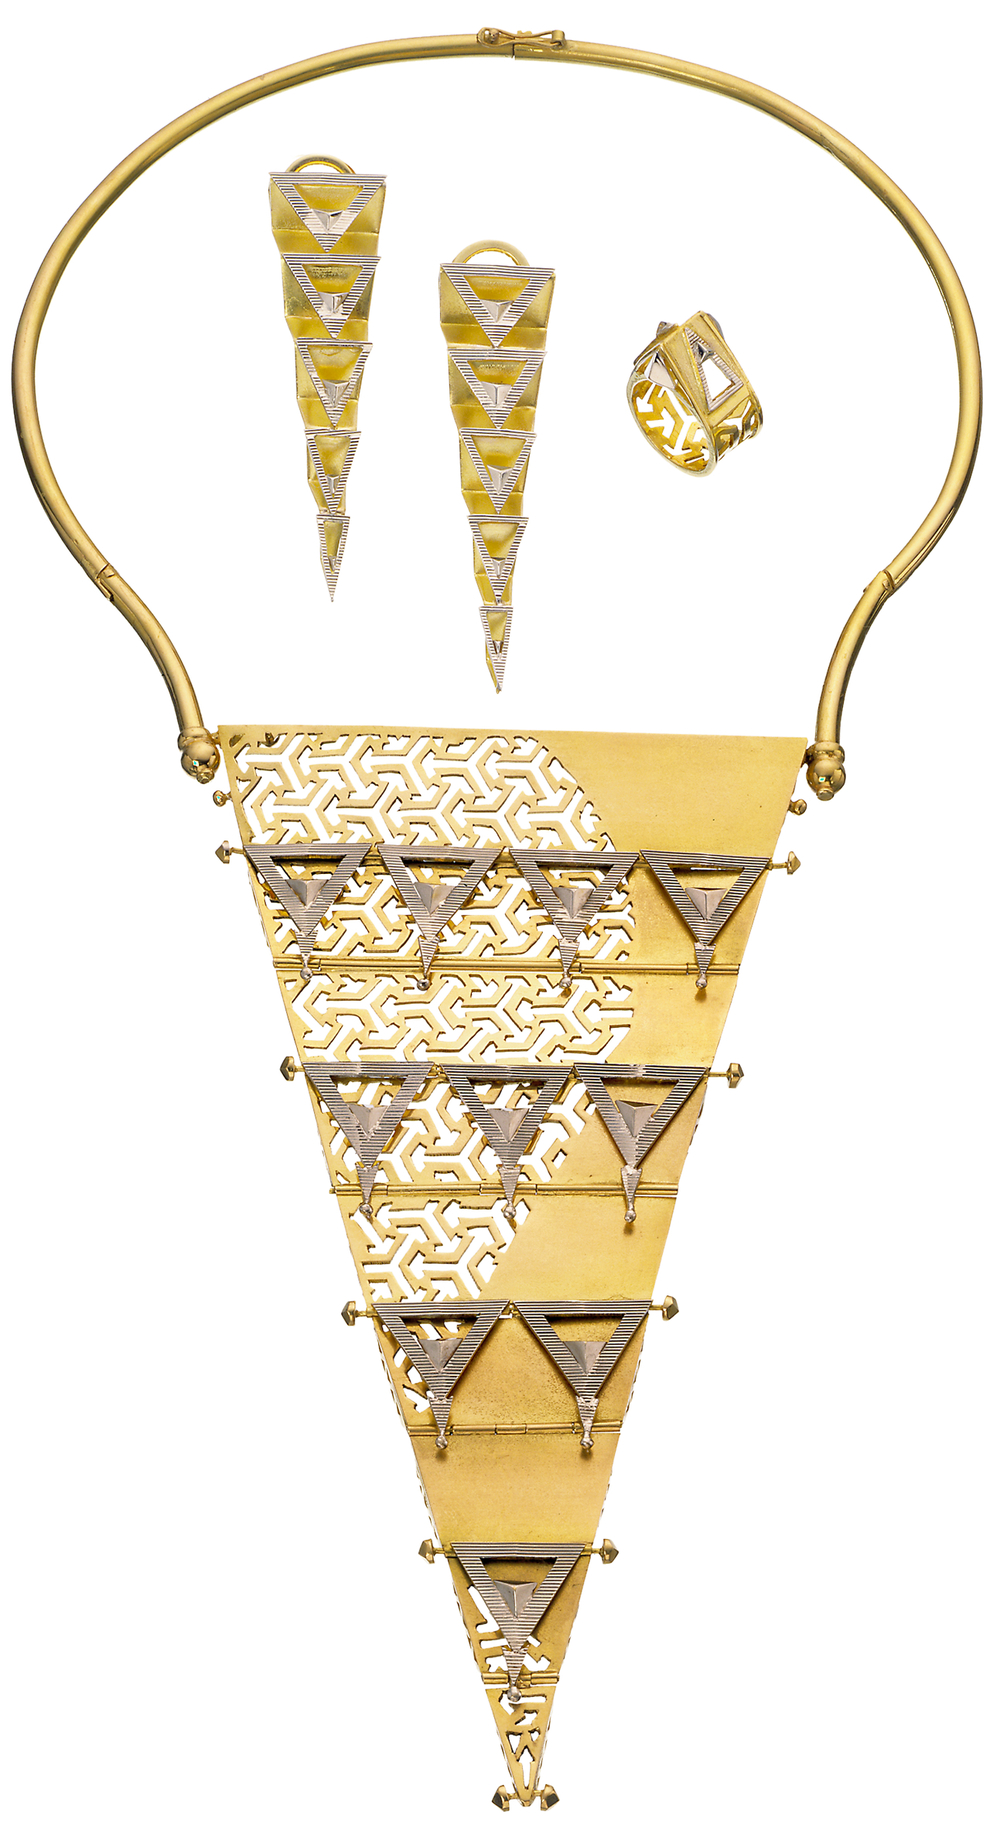 Image: 'Gold Virtuosi' ensemble by Reena Ahluwalia. 18K white and yellow gold. 12 inch necklace transitions from 2D to 3D. Composed of diagonal planer elements and triangles; each plate is hinged and folds like pleats to create a 3D form. Inspired by    Pragati Maidan   , a large convention center in New Delhi, India. The impression it left on me, resulted in a gold jewel. I found the interplay of open and closed spaces fascinating, as they almost assume human qualities. A meeting place, coming together of minds, blending and forming.